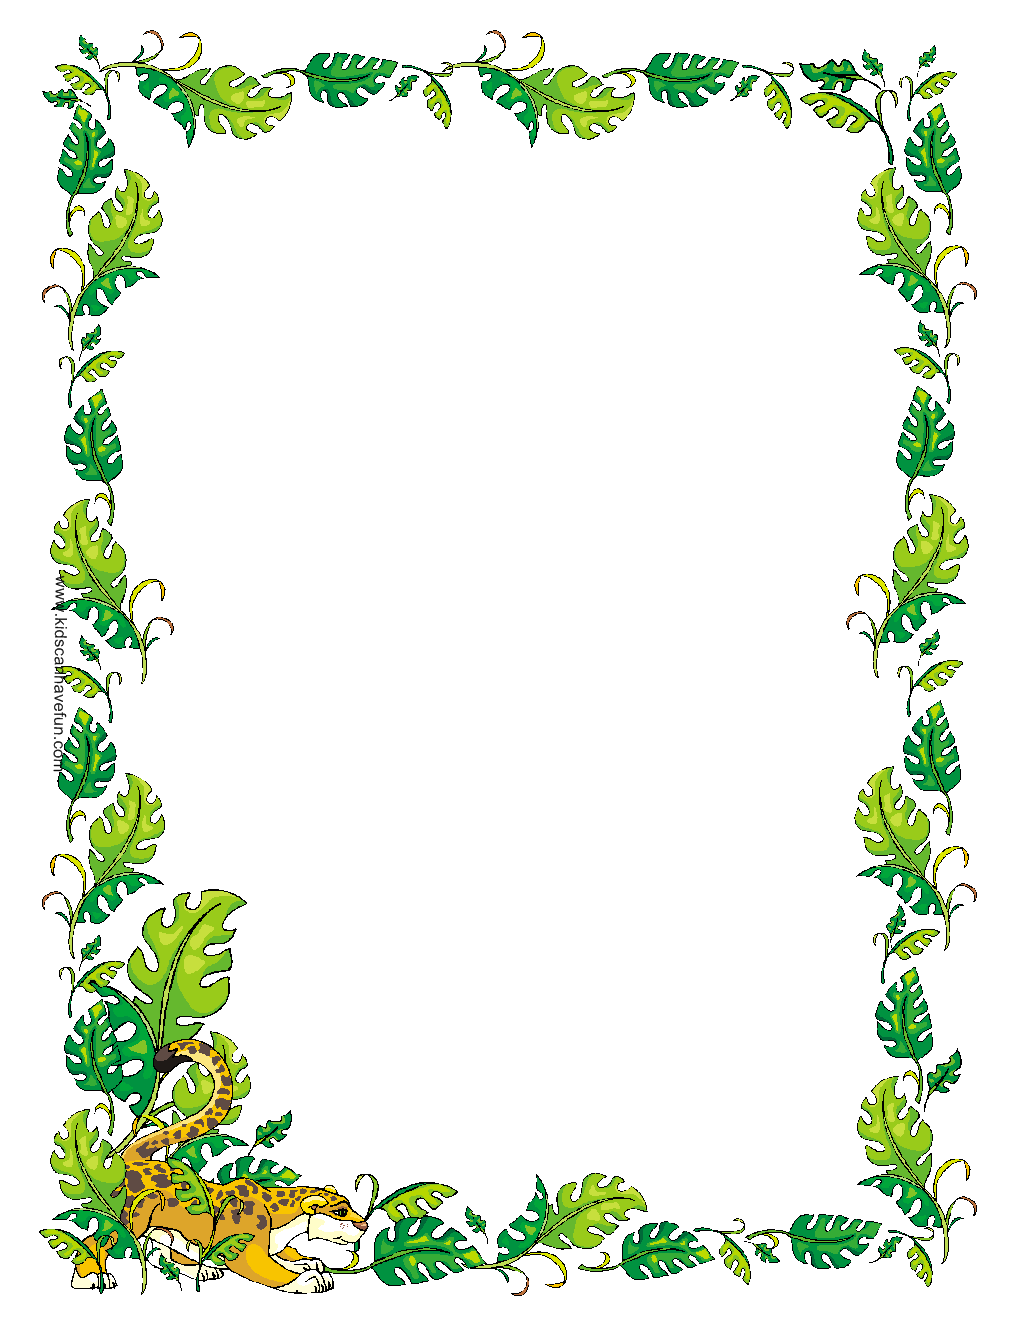 Drawn jungle border Free Clip Art Paper Borders